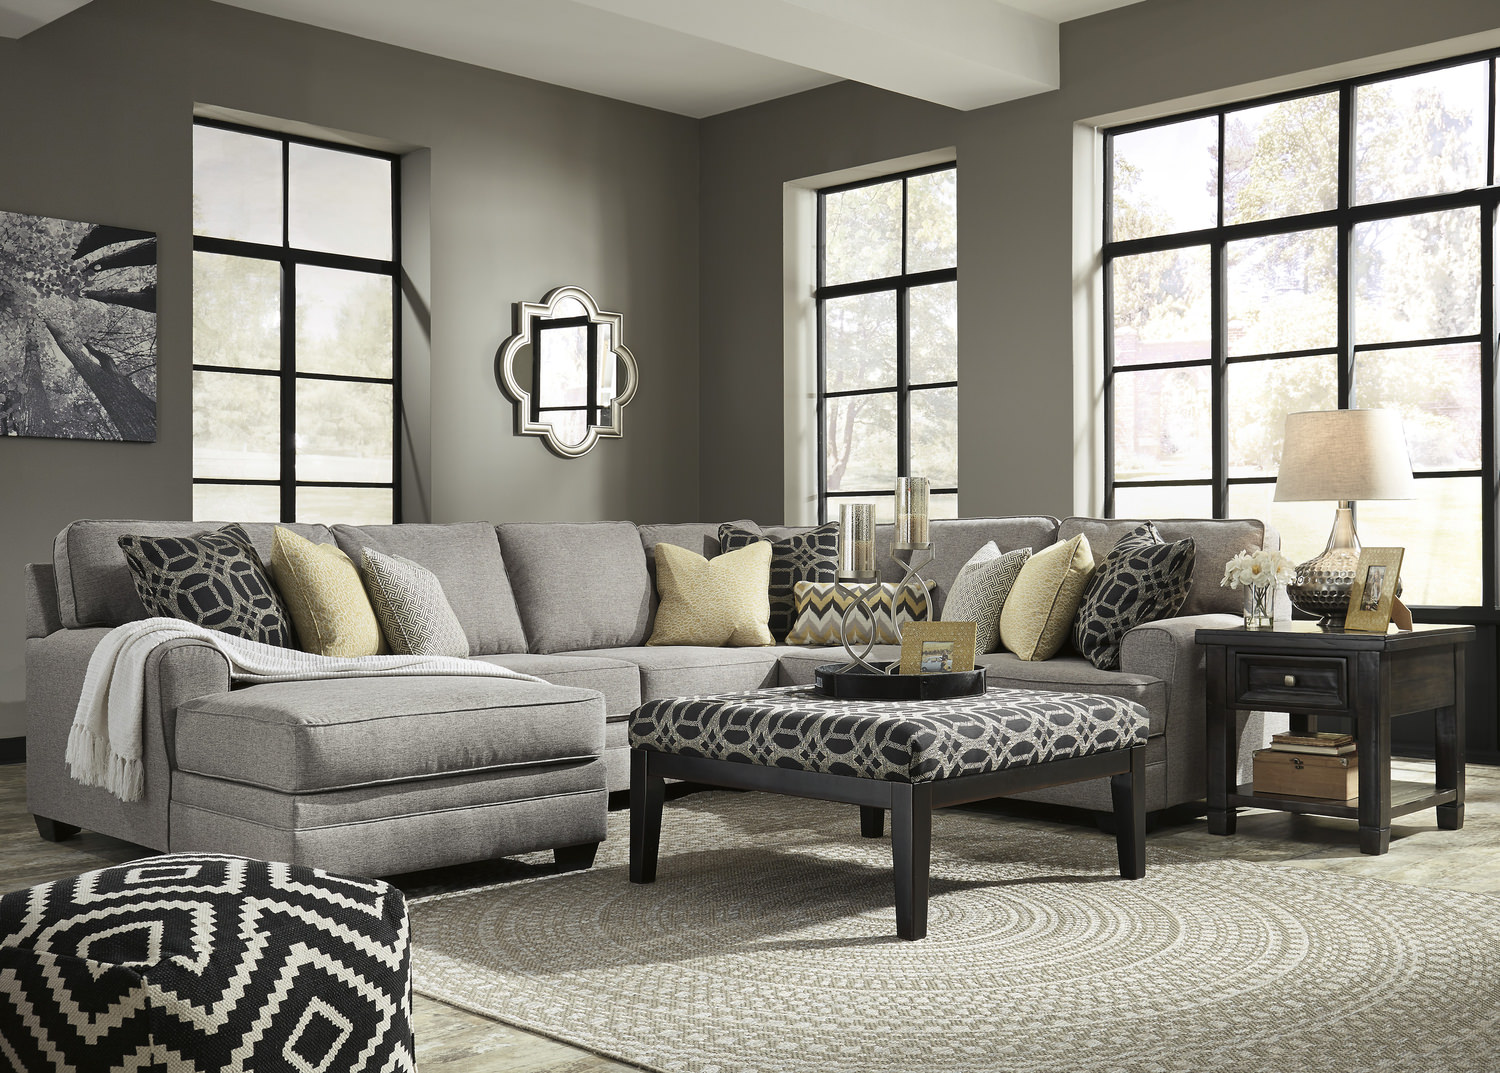 City 4 Piece Sectional. City 4 Piece Sectional   HOM Furniture   Furniture Stores in